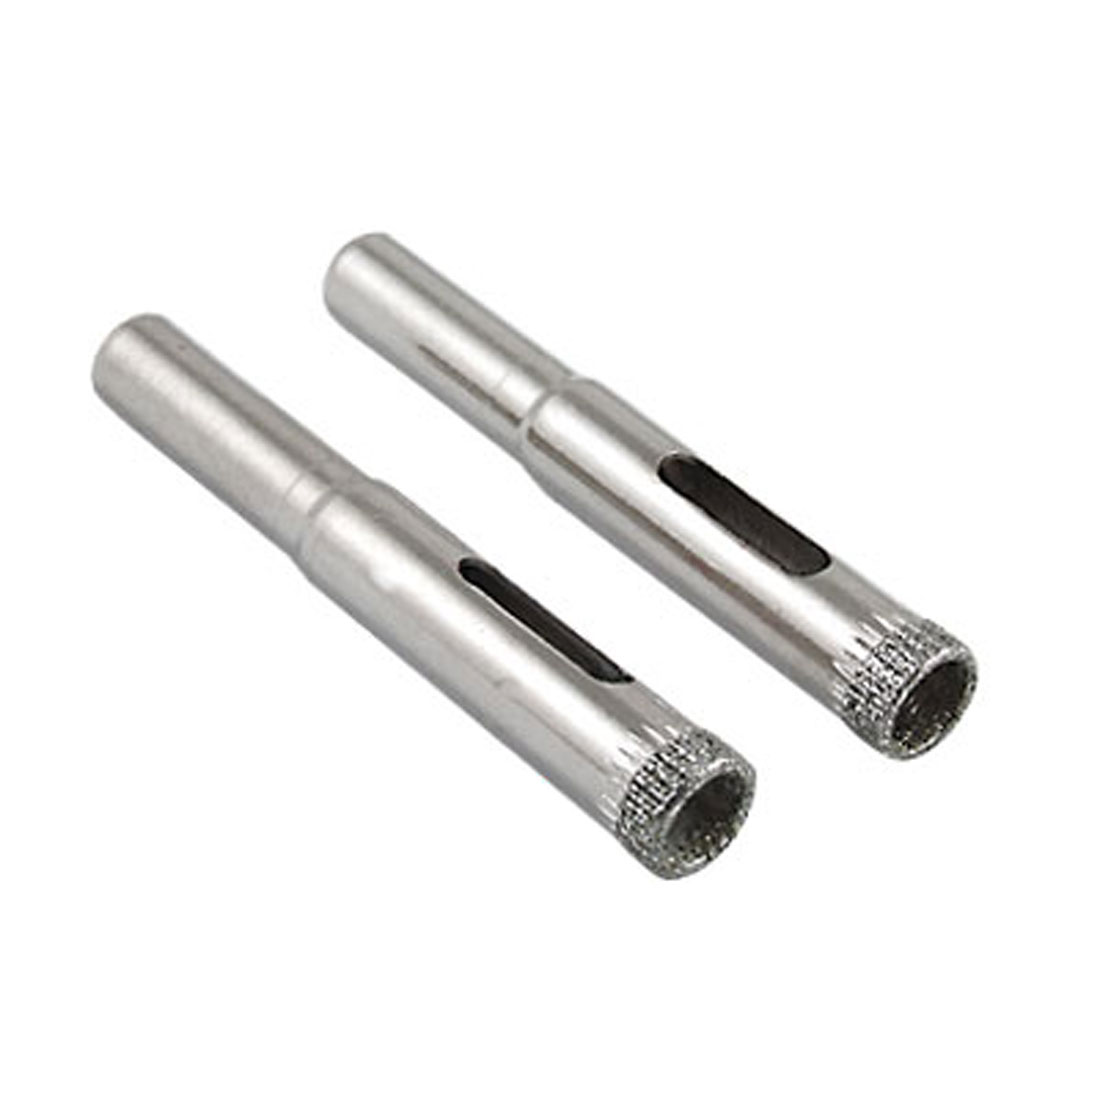 2 Pcs 8mm Diameter Glasses Tile Diamond Hole Saw Drilling Tool